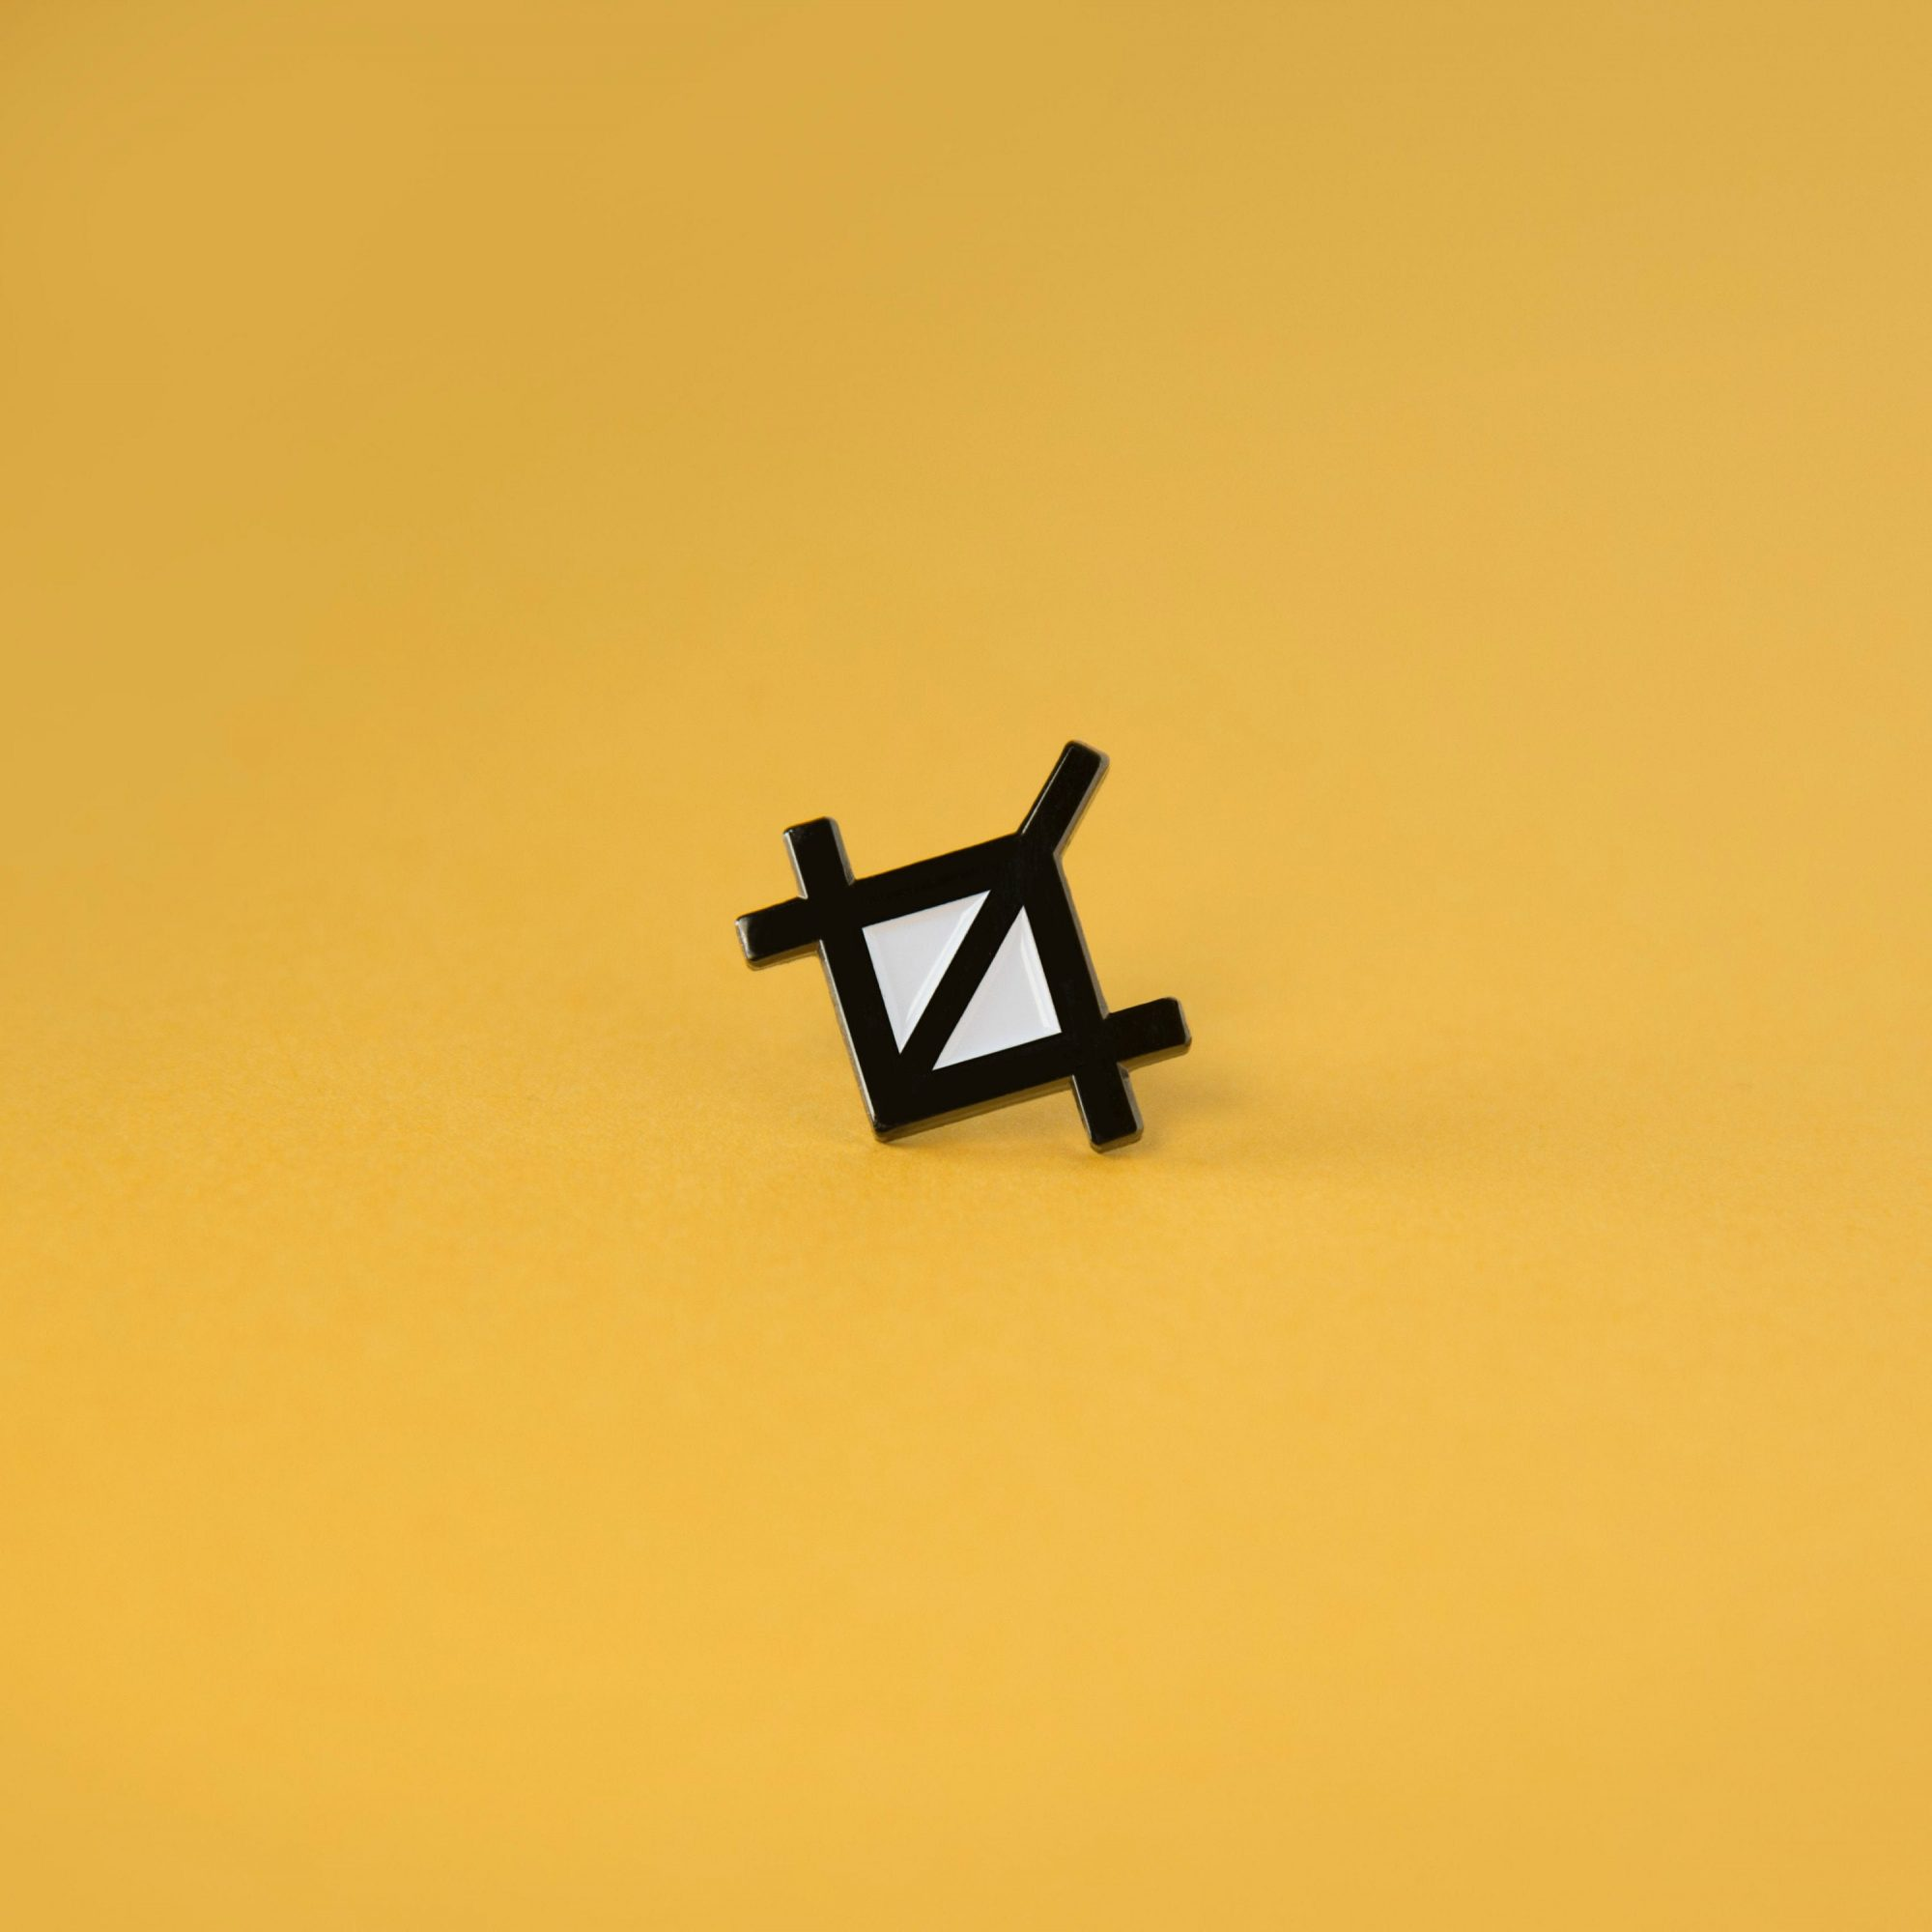 A photo of an enamel pin badge that resembles the crop option in design tools